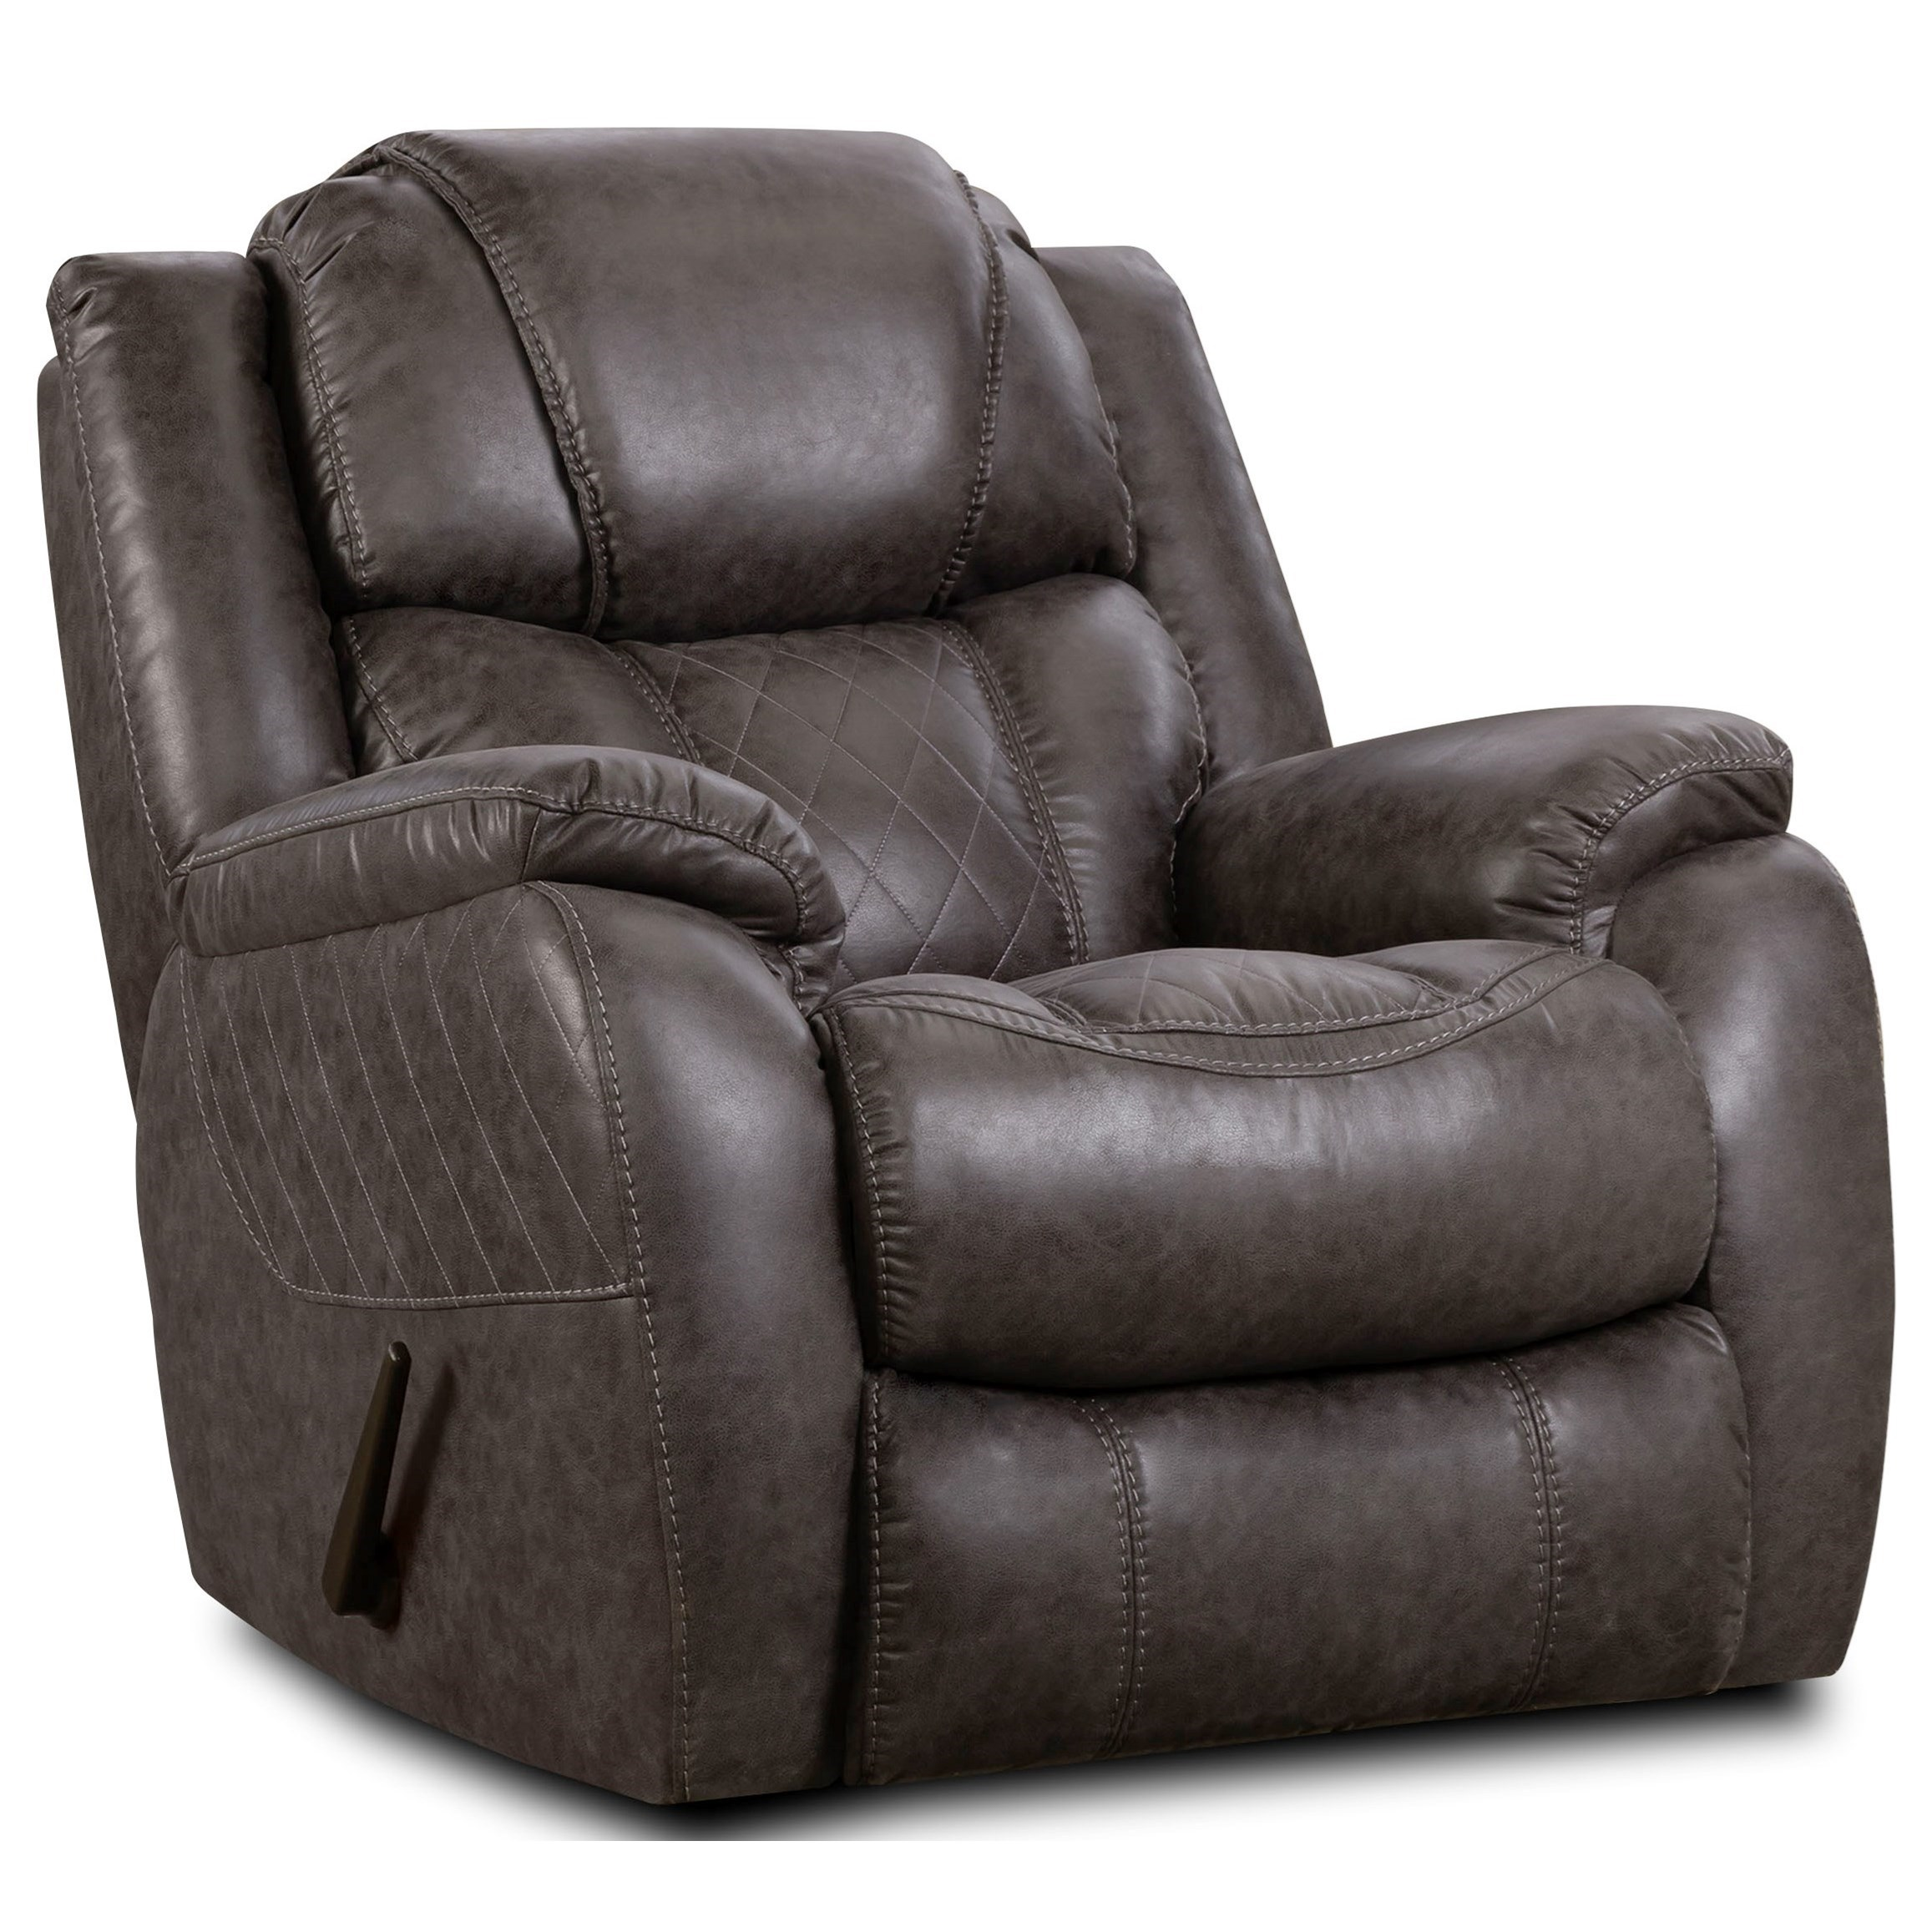 182 Rocker Recliner by HomeStretch at Rife's Home Furniture